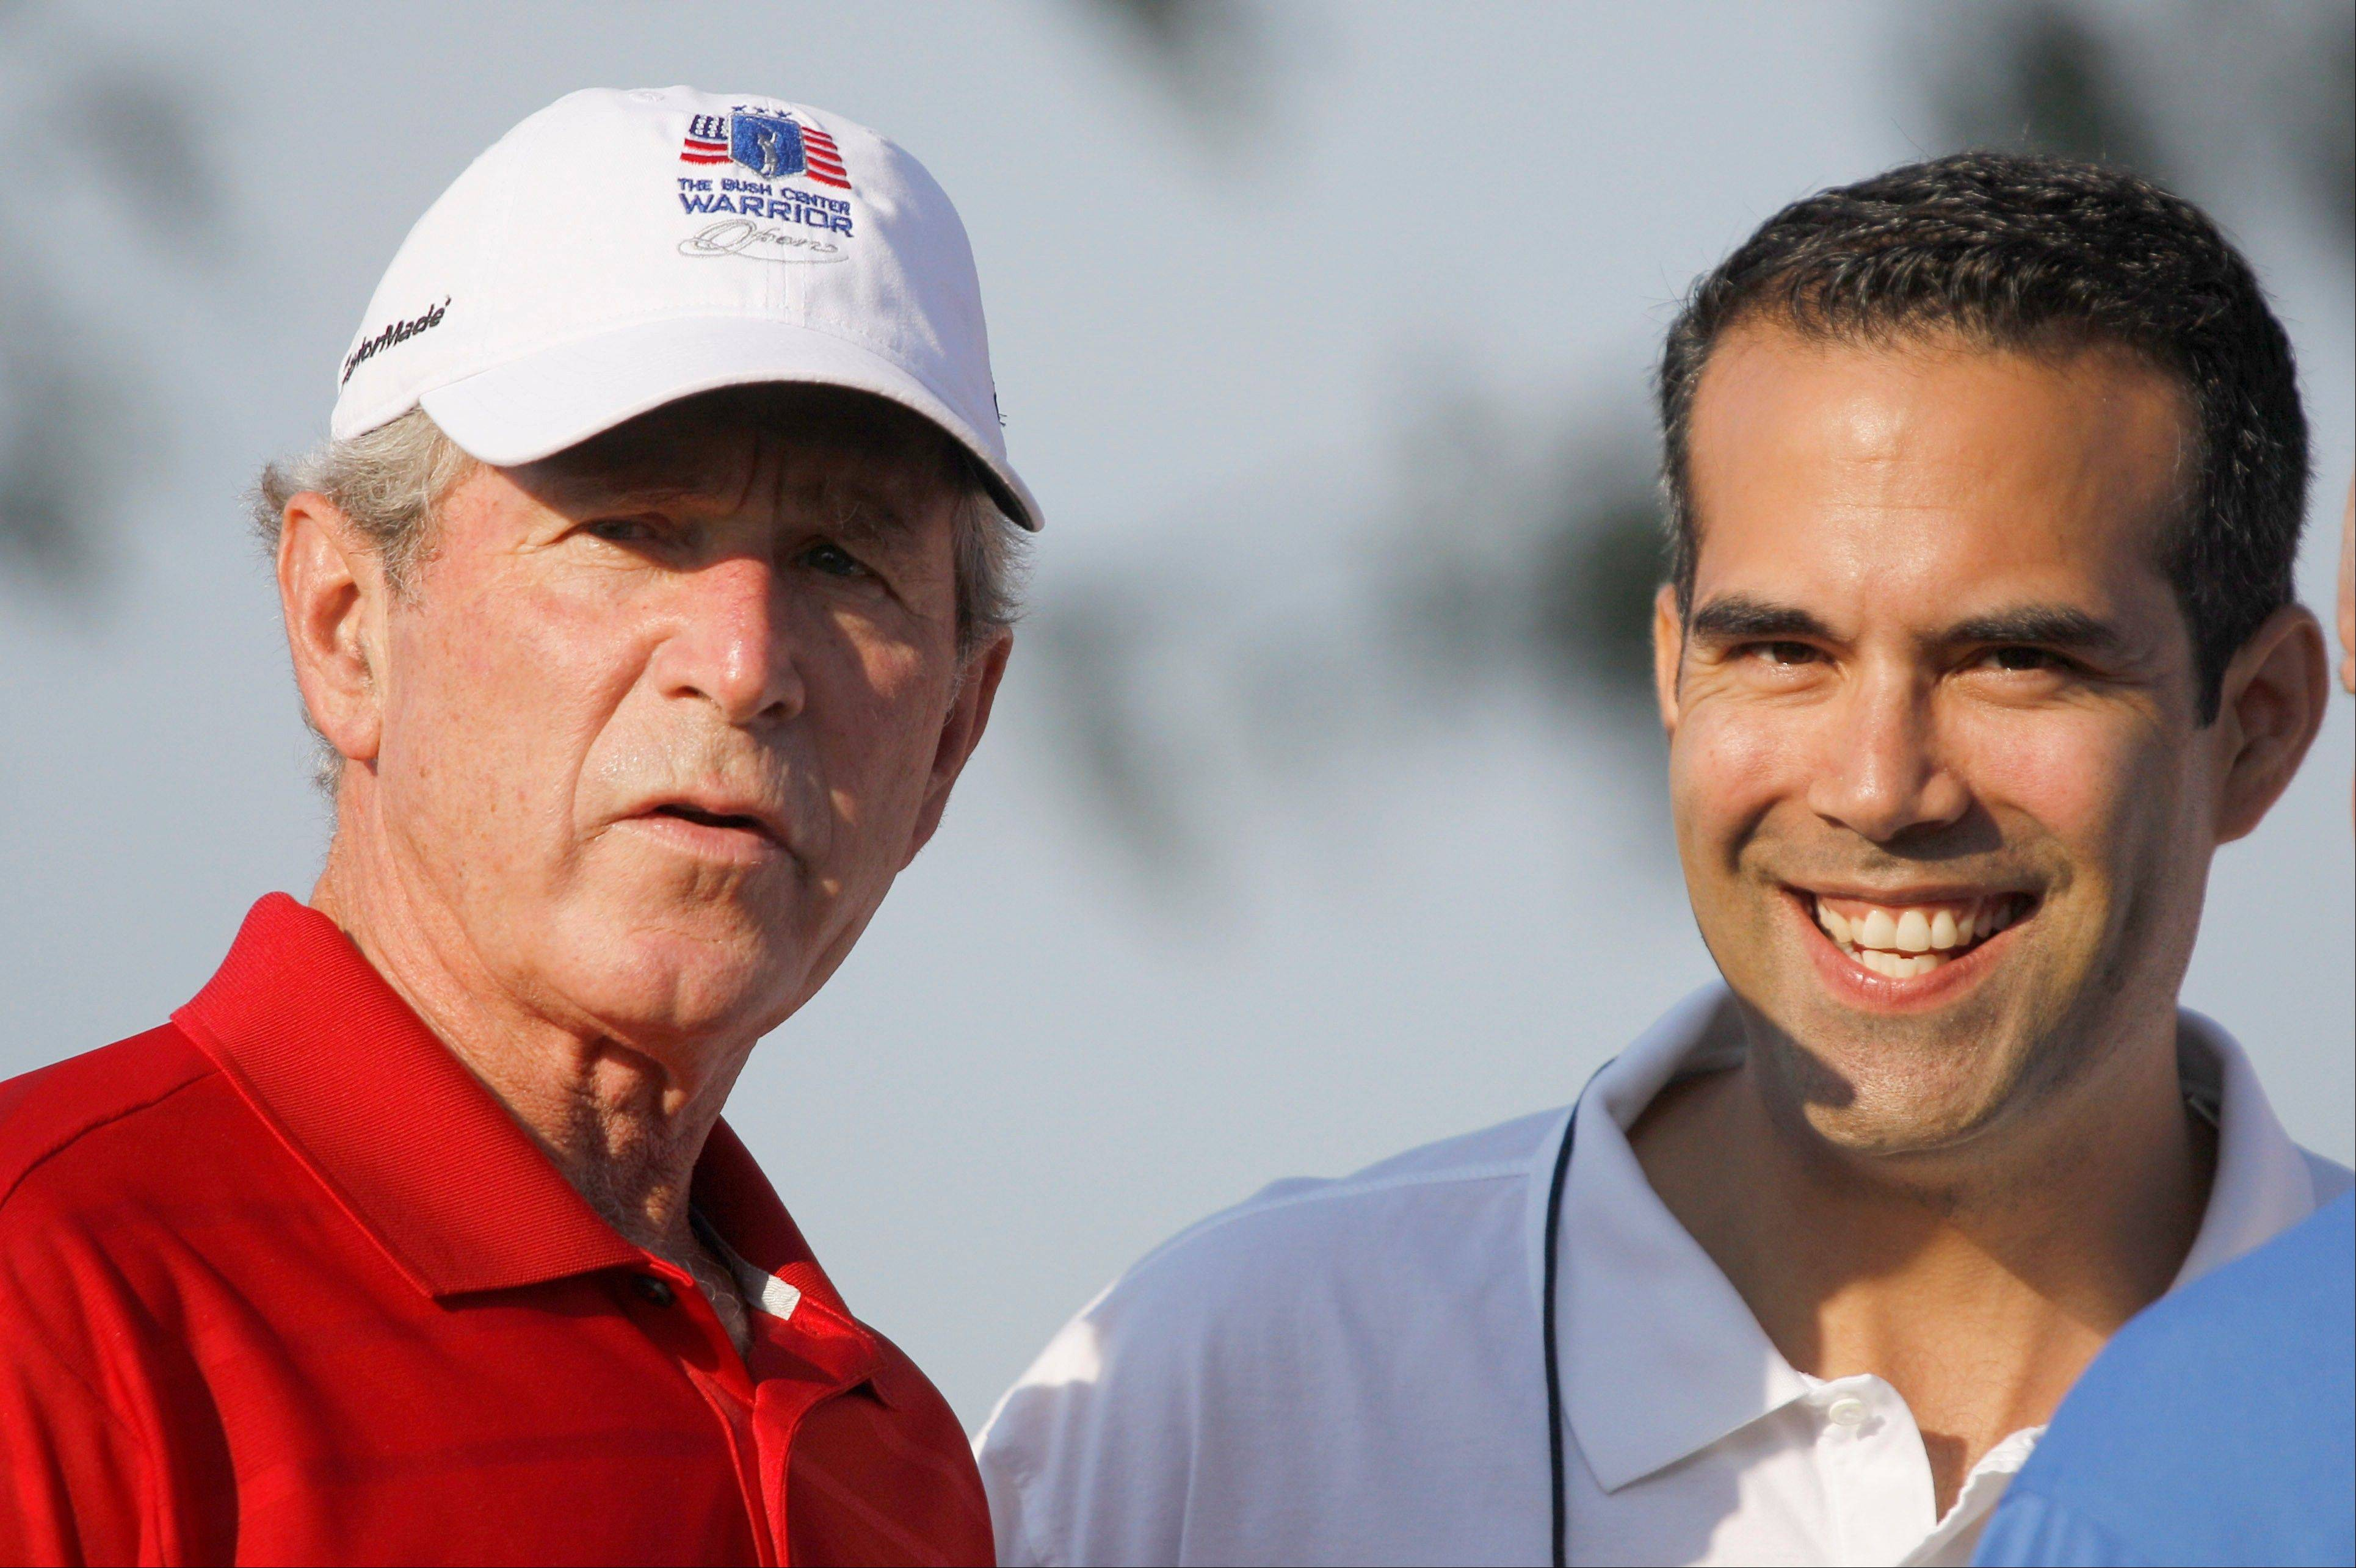 Associated Press/Sept. 24, 2012George P. Bush, right, stands with his uncle former President George W. Bush, left, during the Bush Center Warrior Open in Irving, Texas.